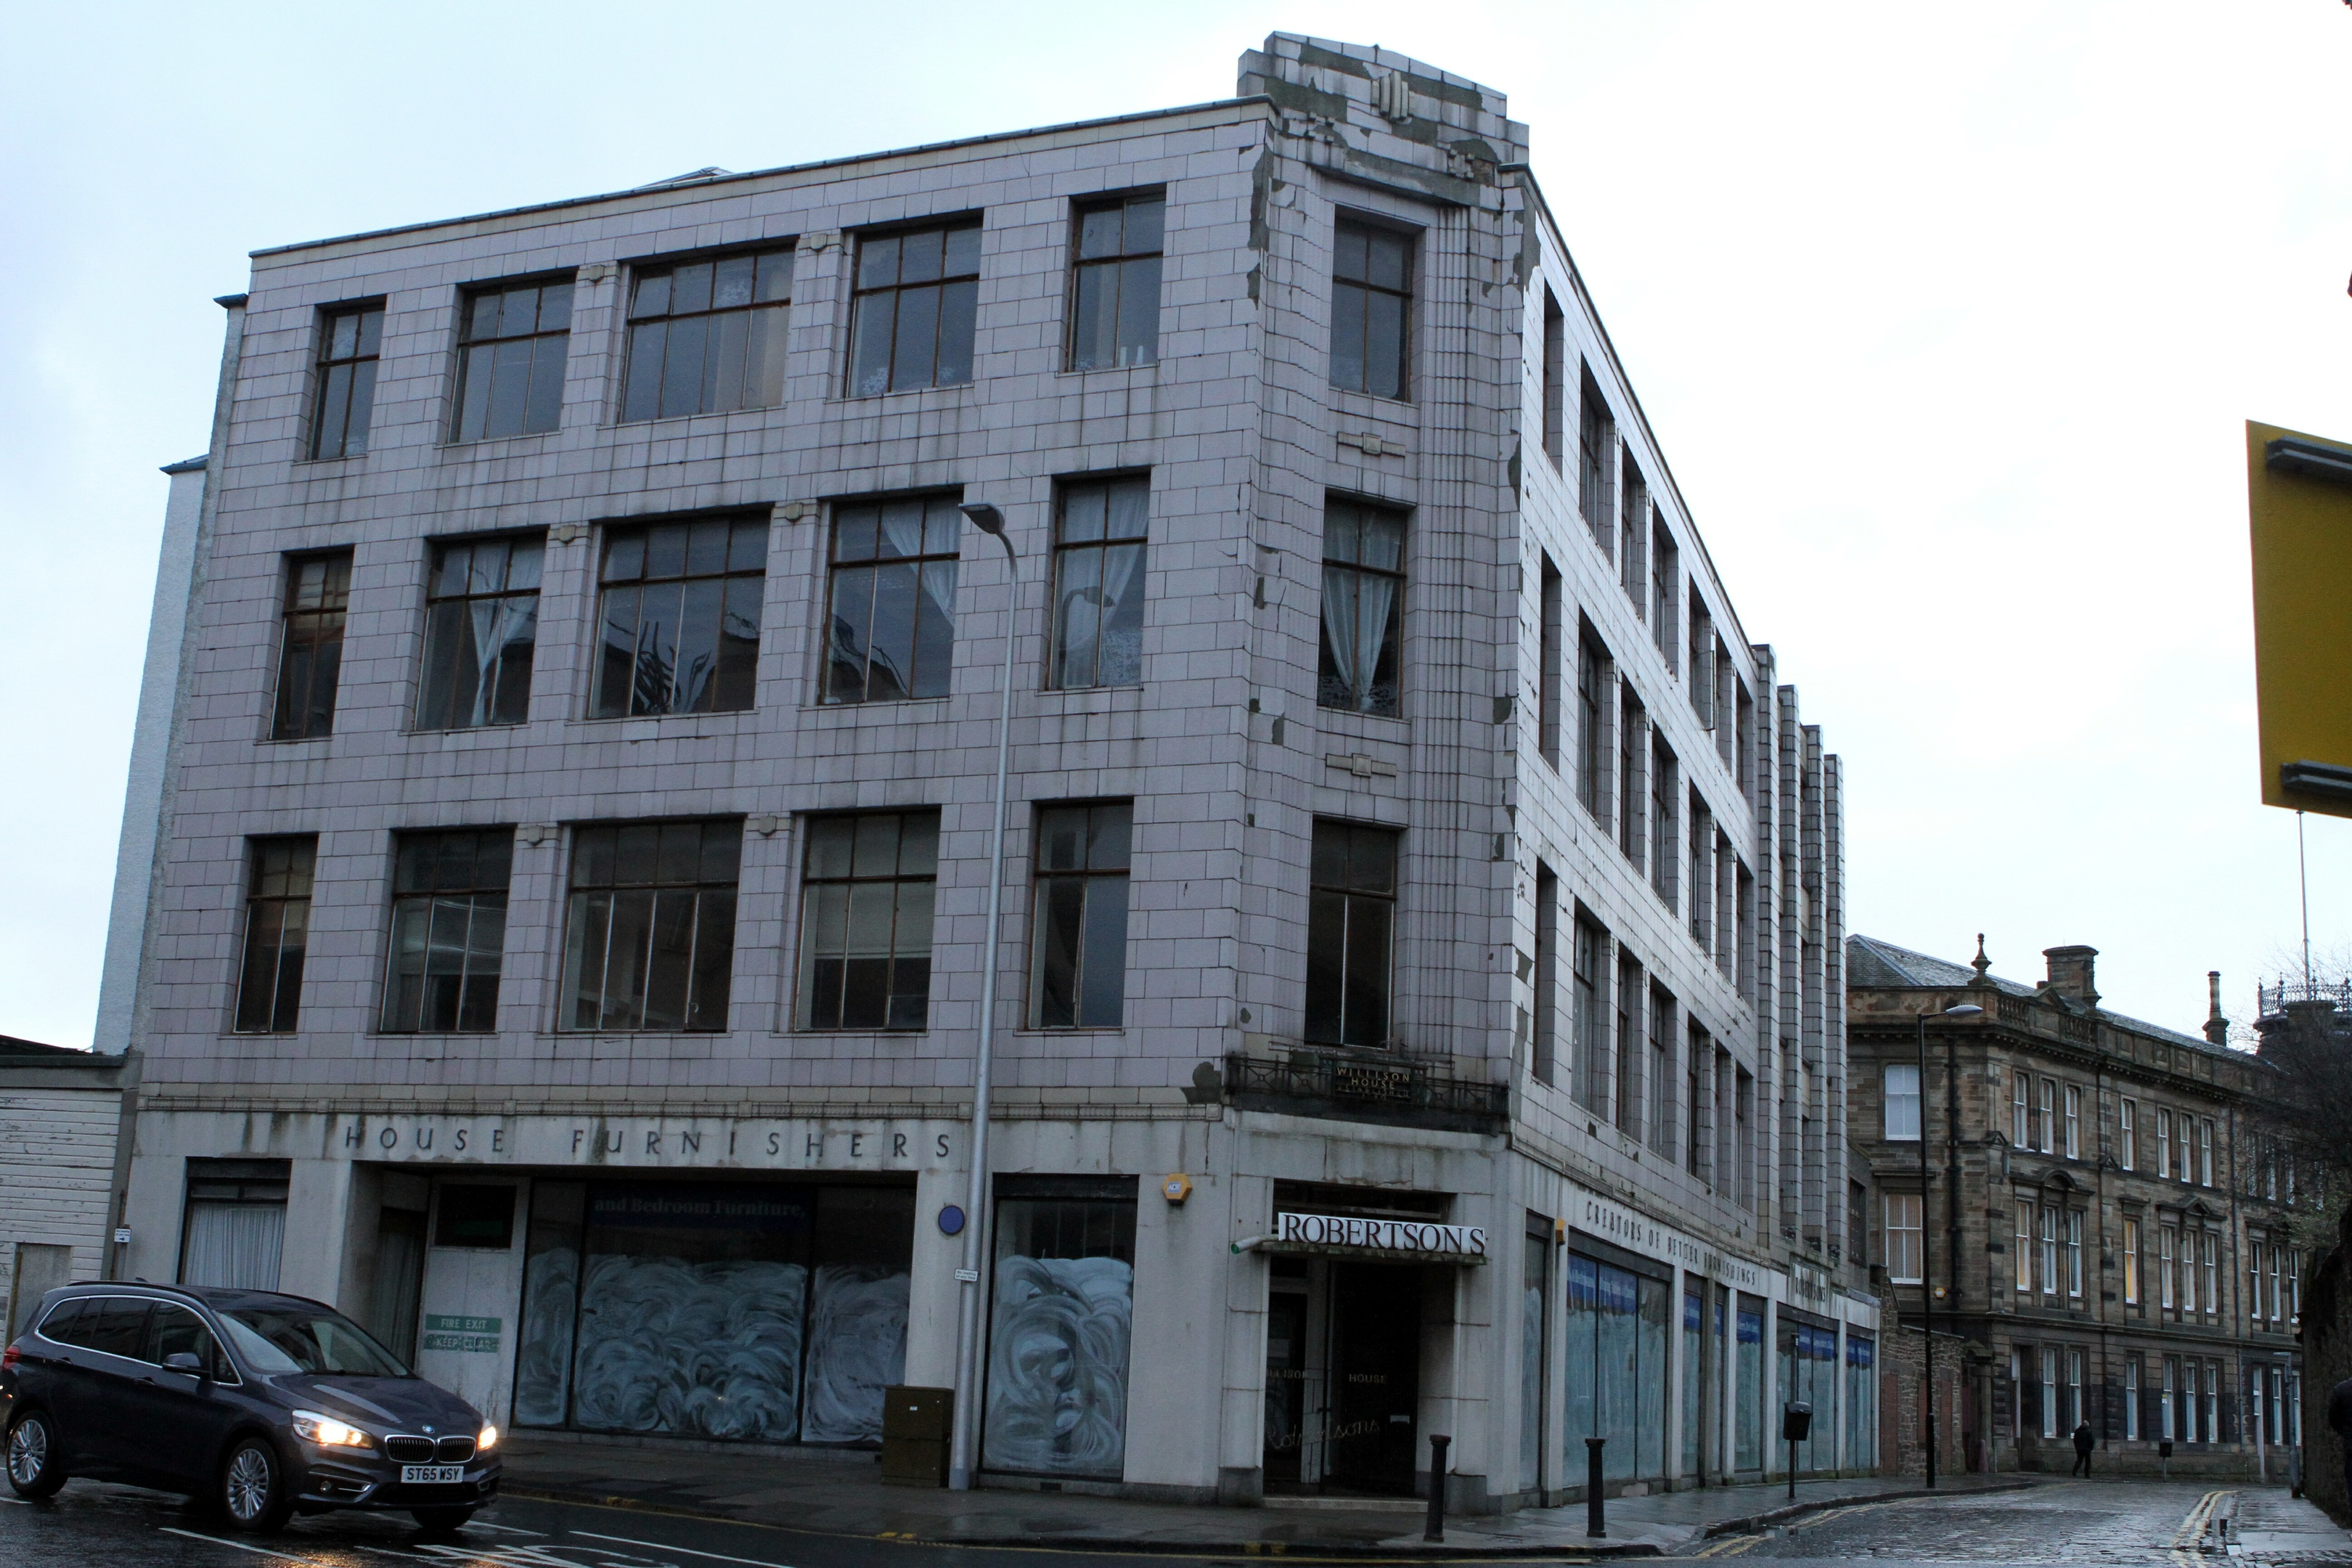 Plans have been lodged to knock down much of the building.